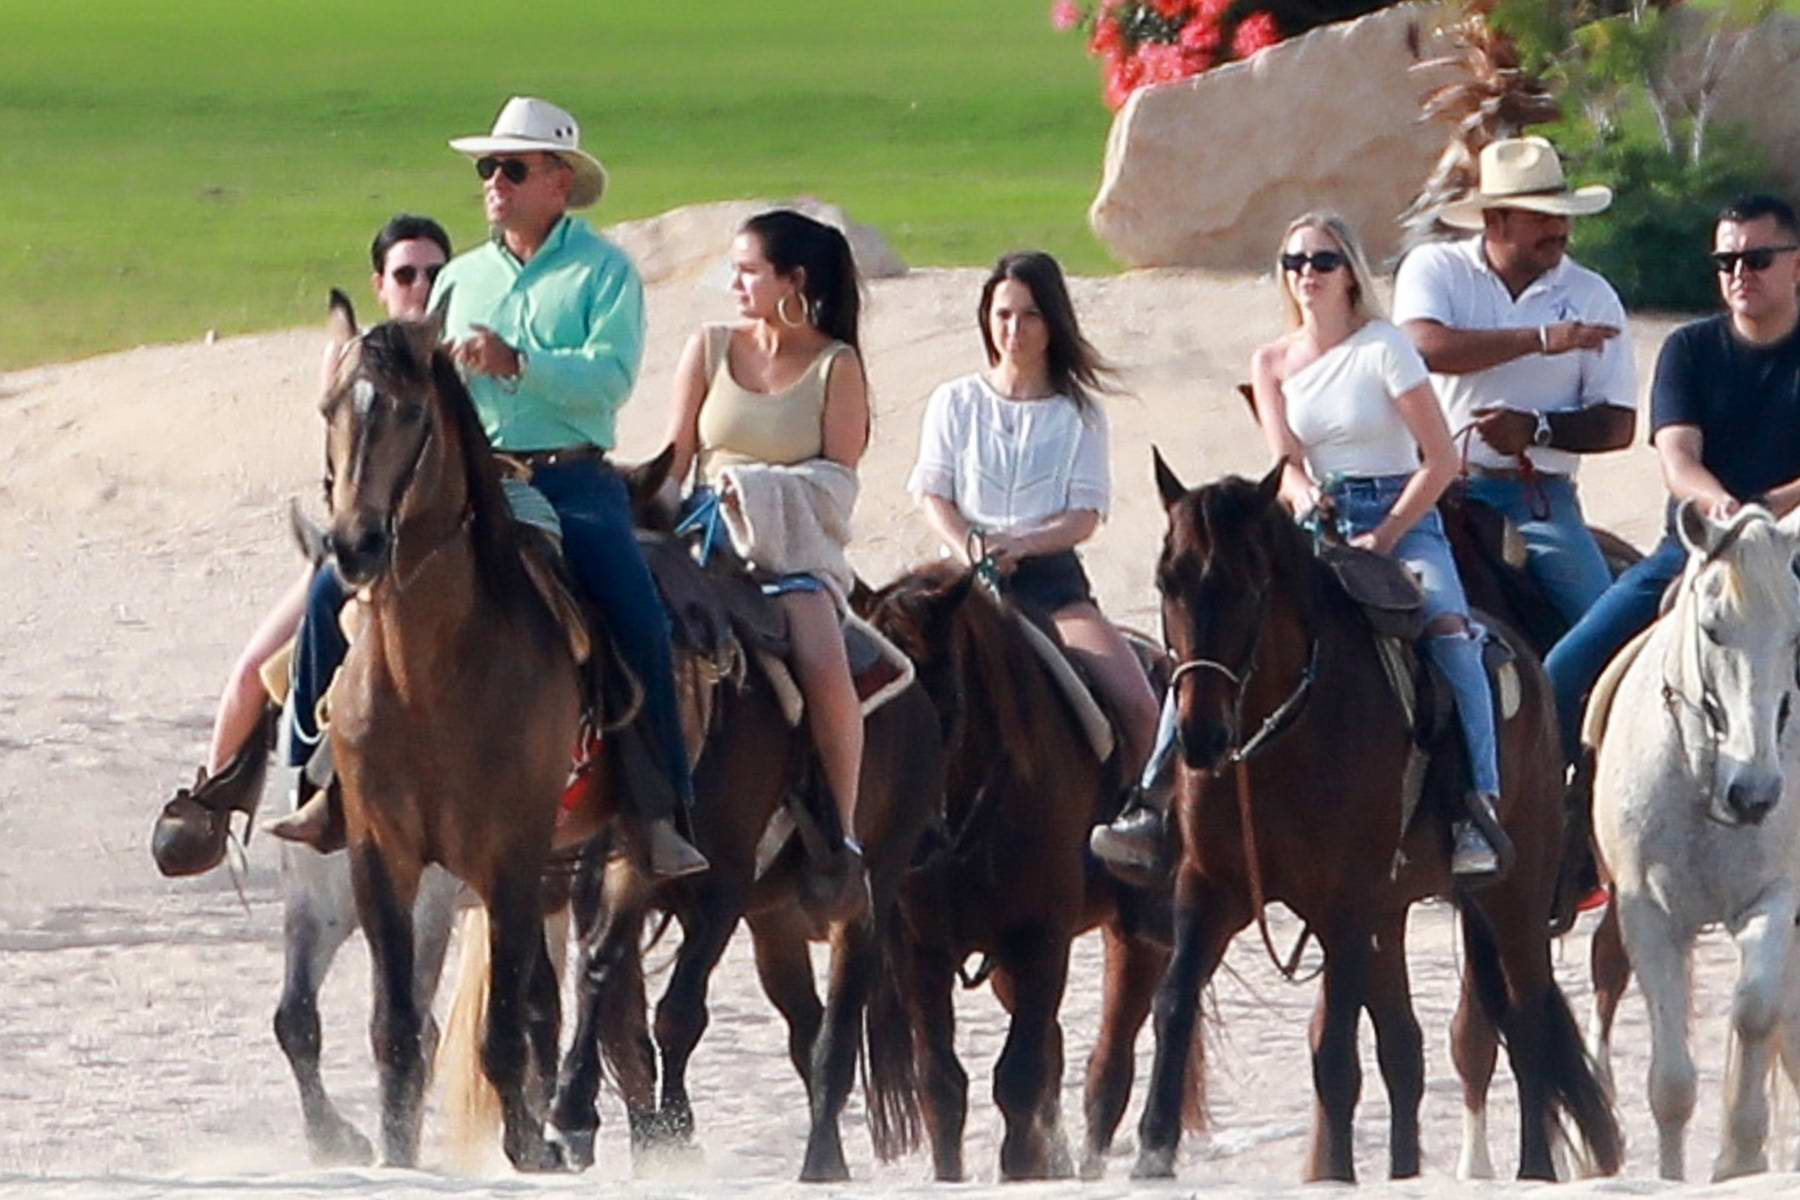 Selena Gomez Enjoys Some Horse Riding At The Beach With Friends In Cabo San Lucas Mexico 110219 4